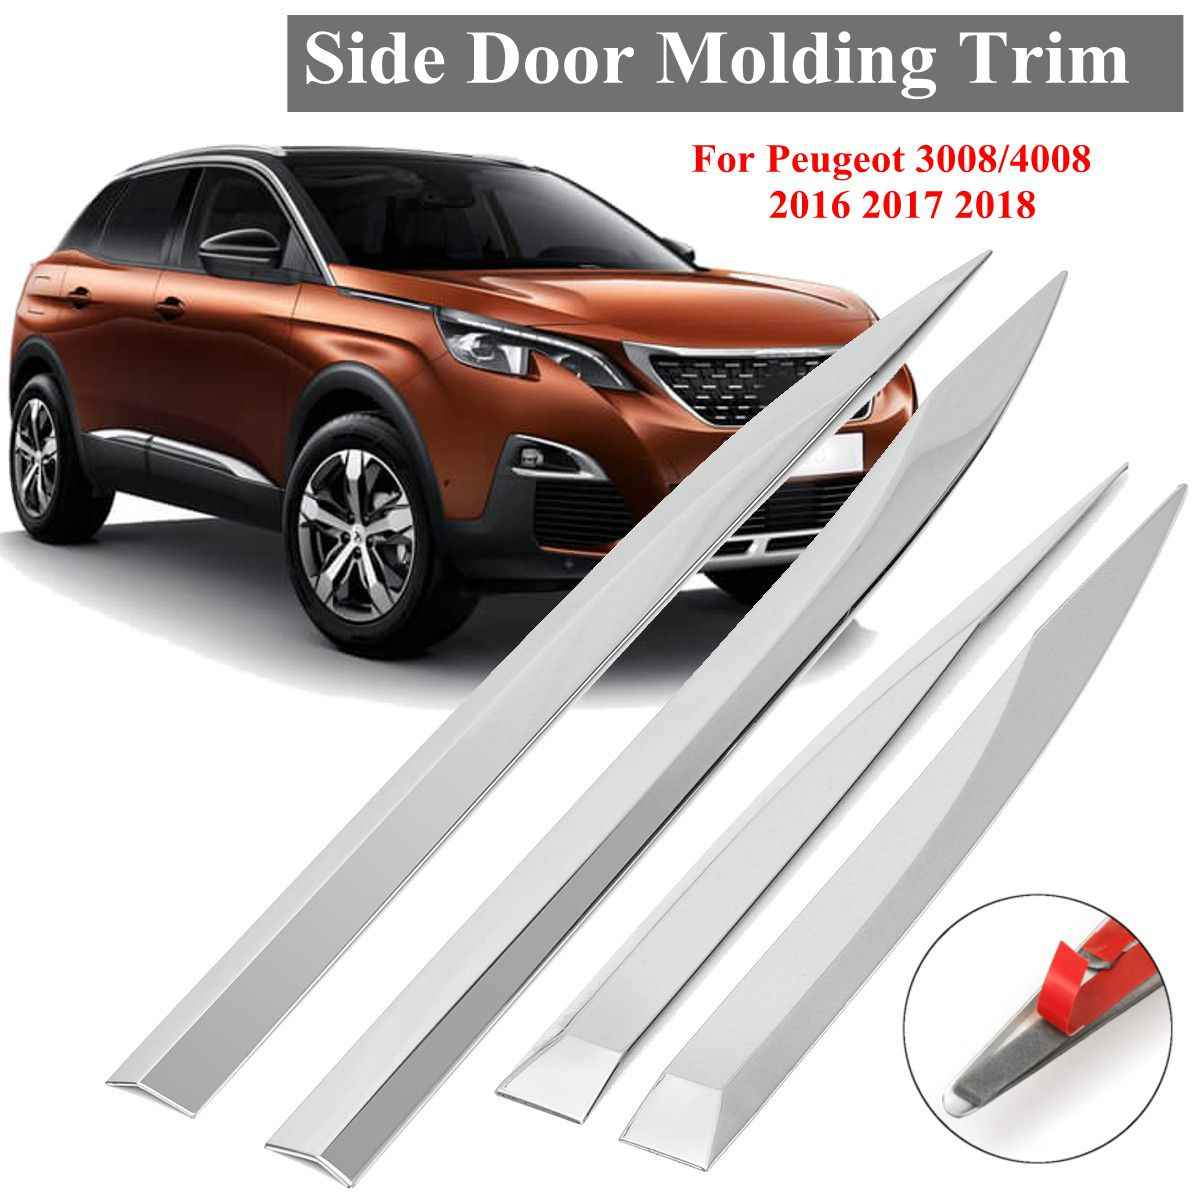 4 Stks/set Deur Body Chrome Side Molding Protector Trim Rvs Sticker Strips Voor Peugeot 3008 4008 2016-2018 auto Styling